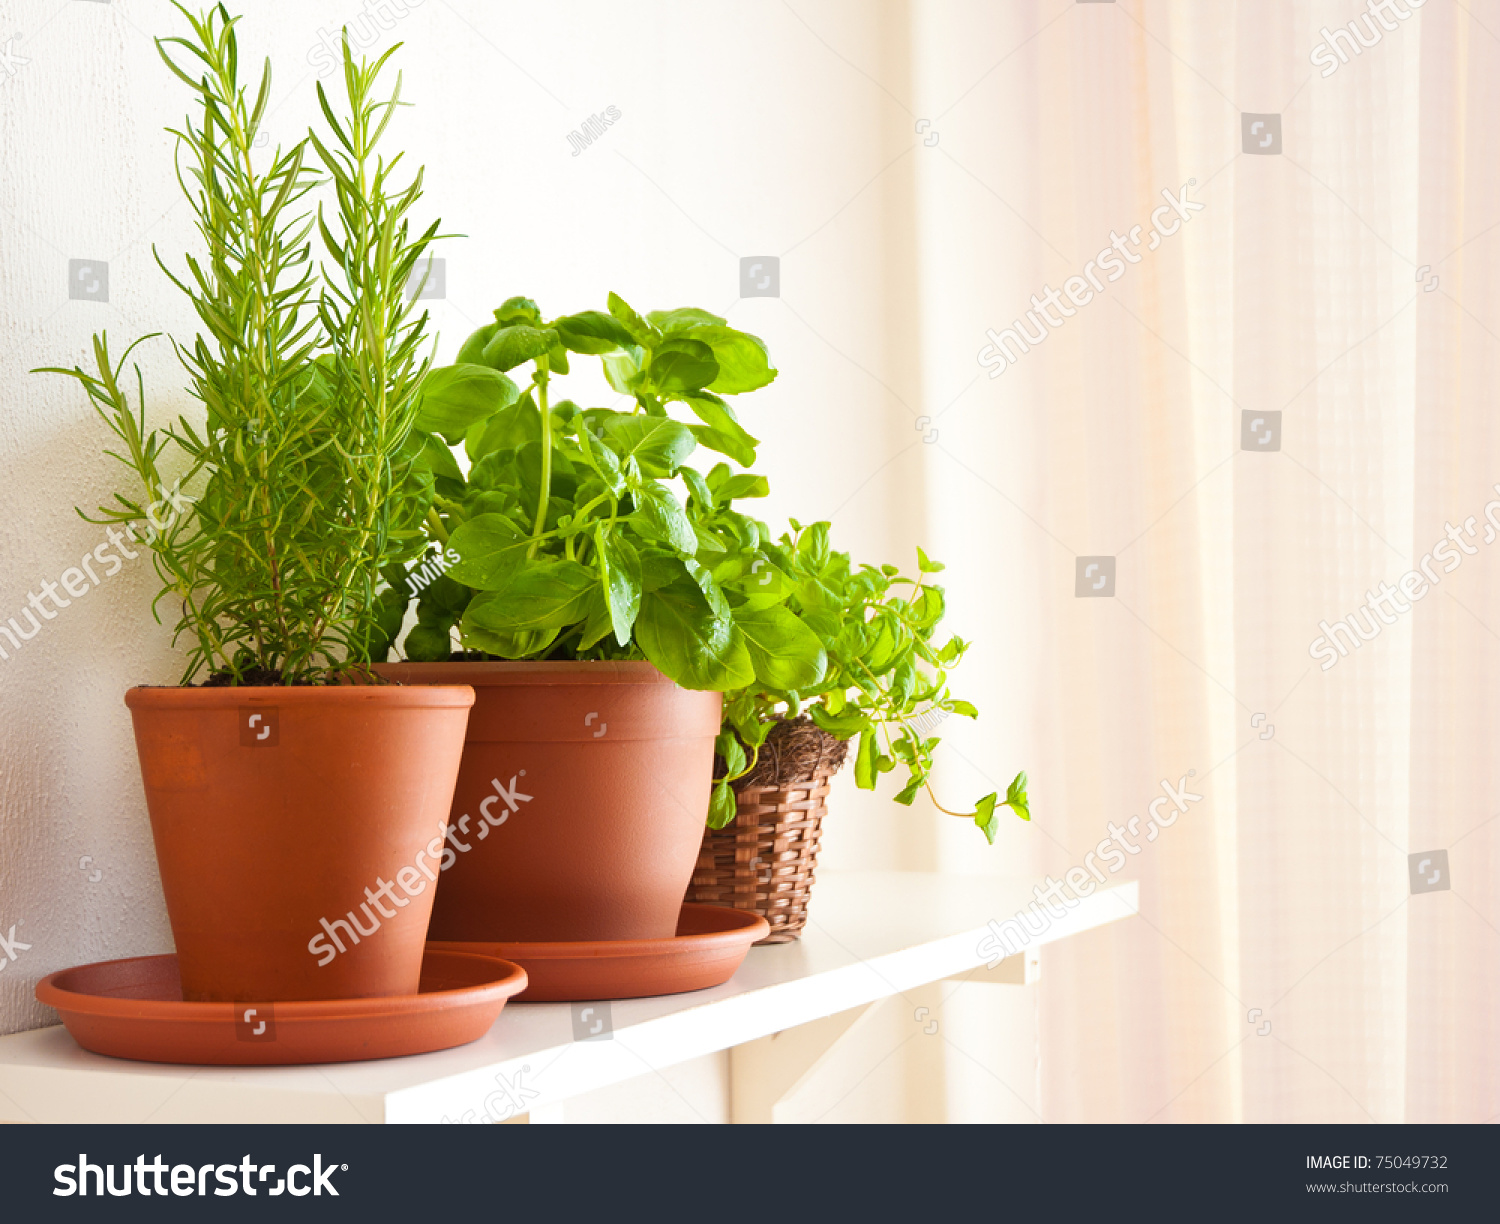 Three pots of herbs rosemary basil and mint stock photo 75049732 shutterstock - Aromatic herbs pots multiple benefits ...